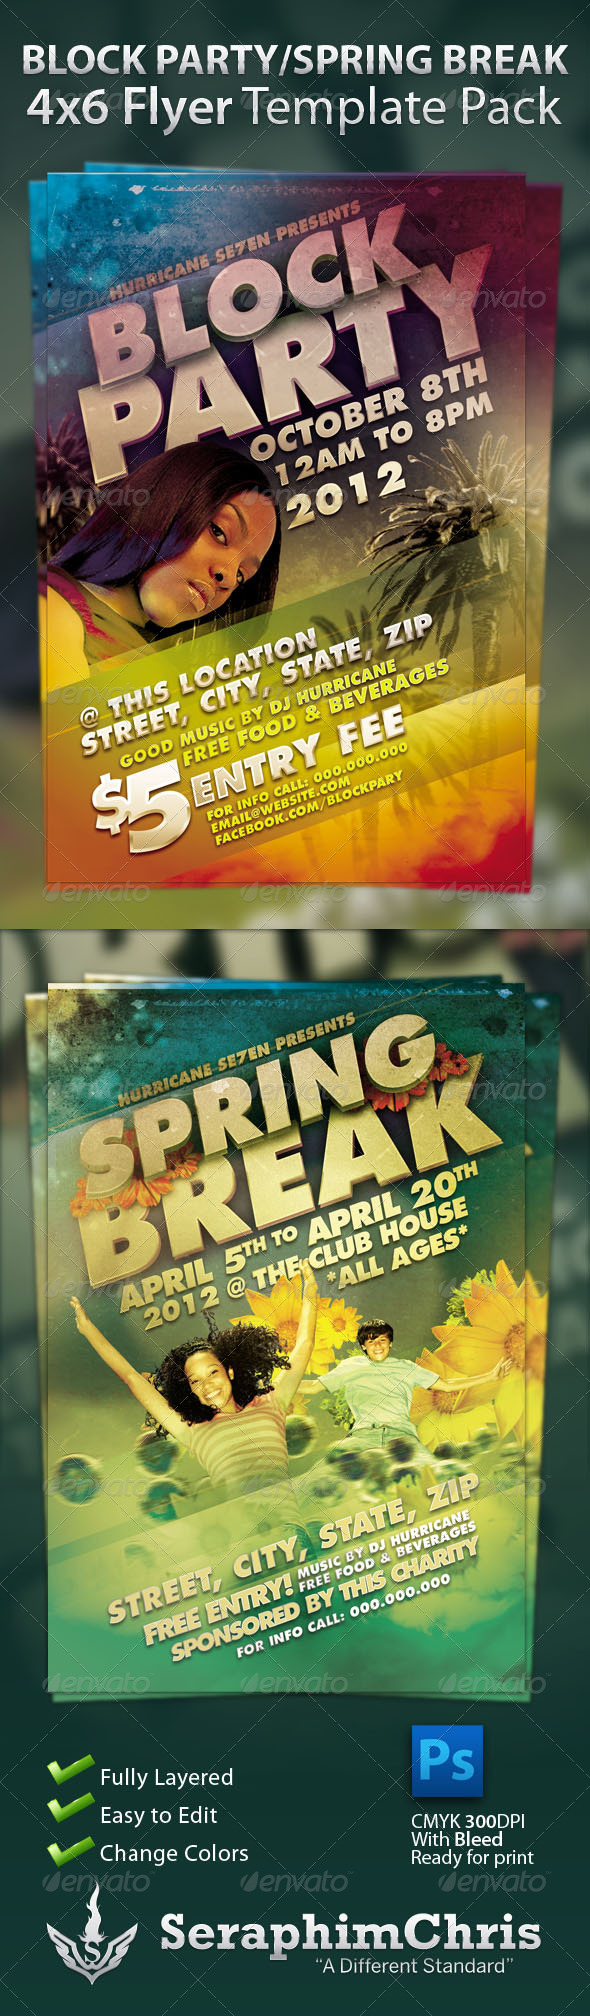 GraphicRiver Block Party and Spring Break Flyer Template Pack 535123